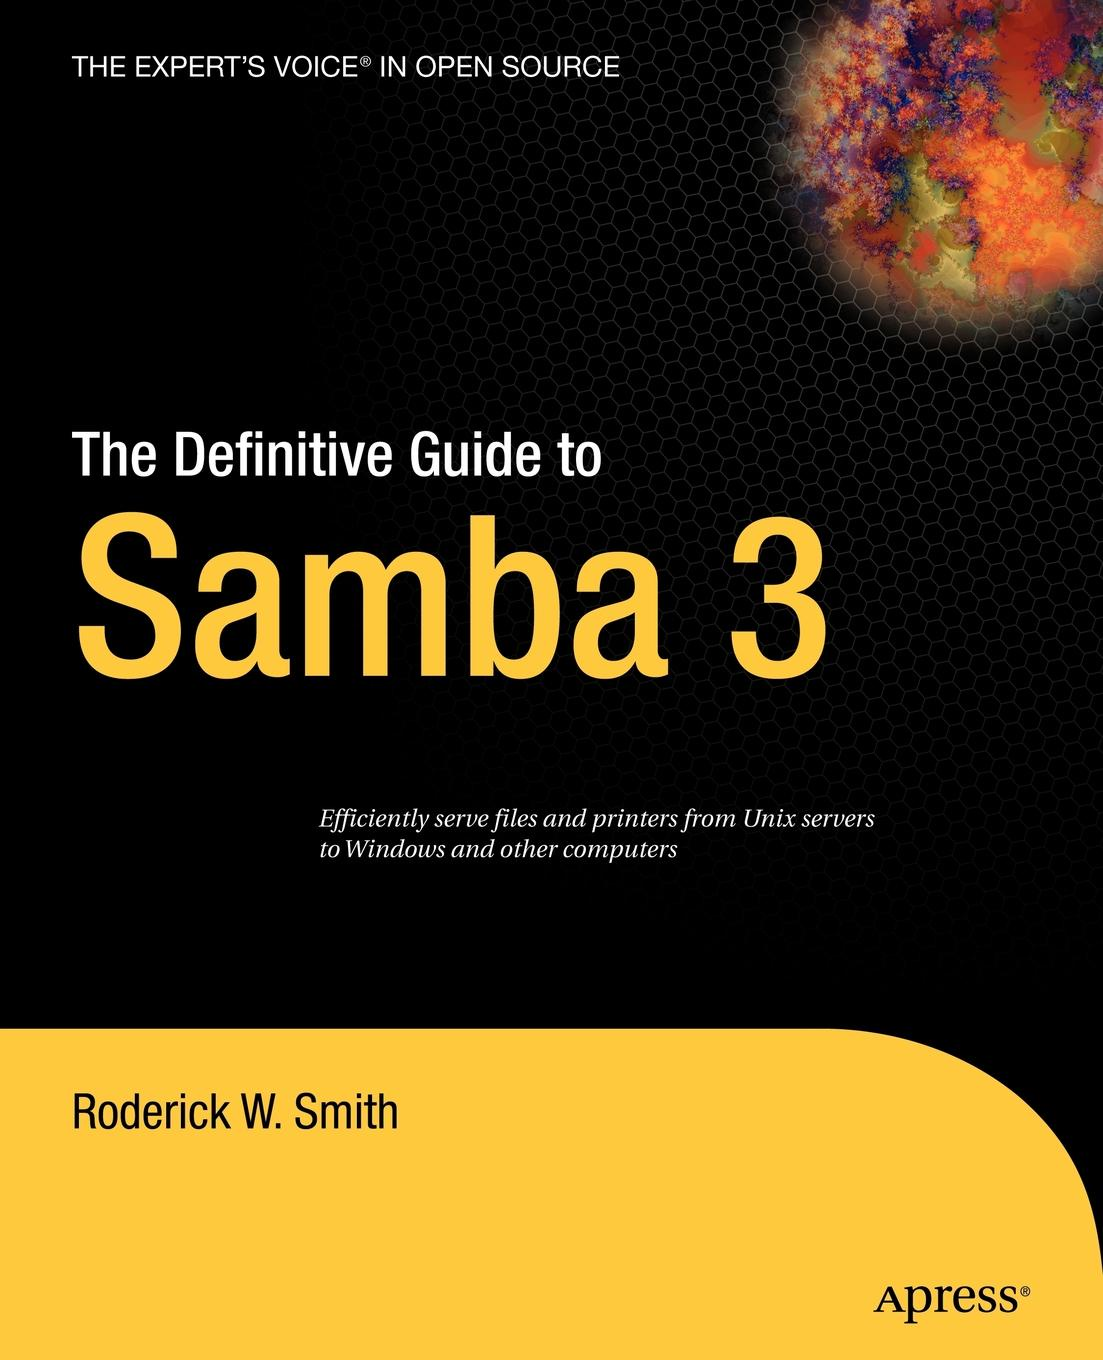 Roderick W. Smith The Definitive Guide to Samba 3